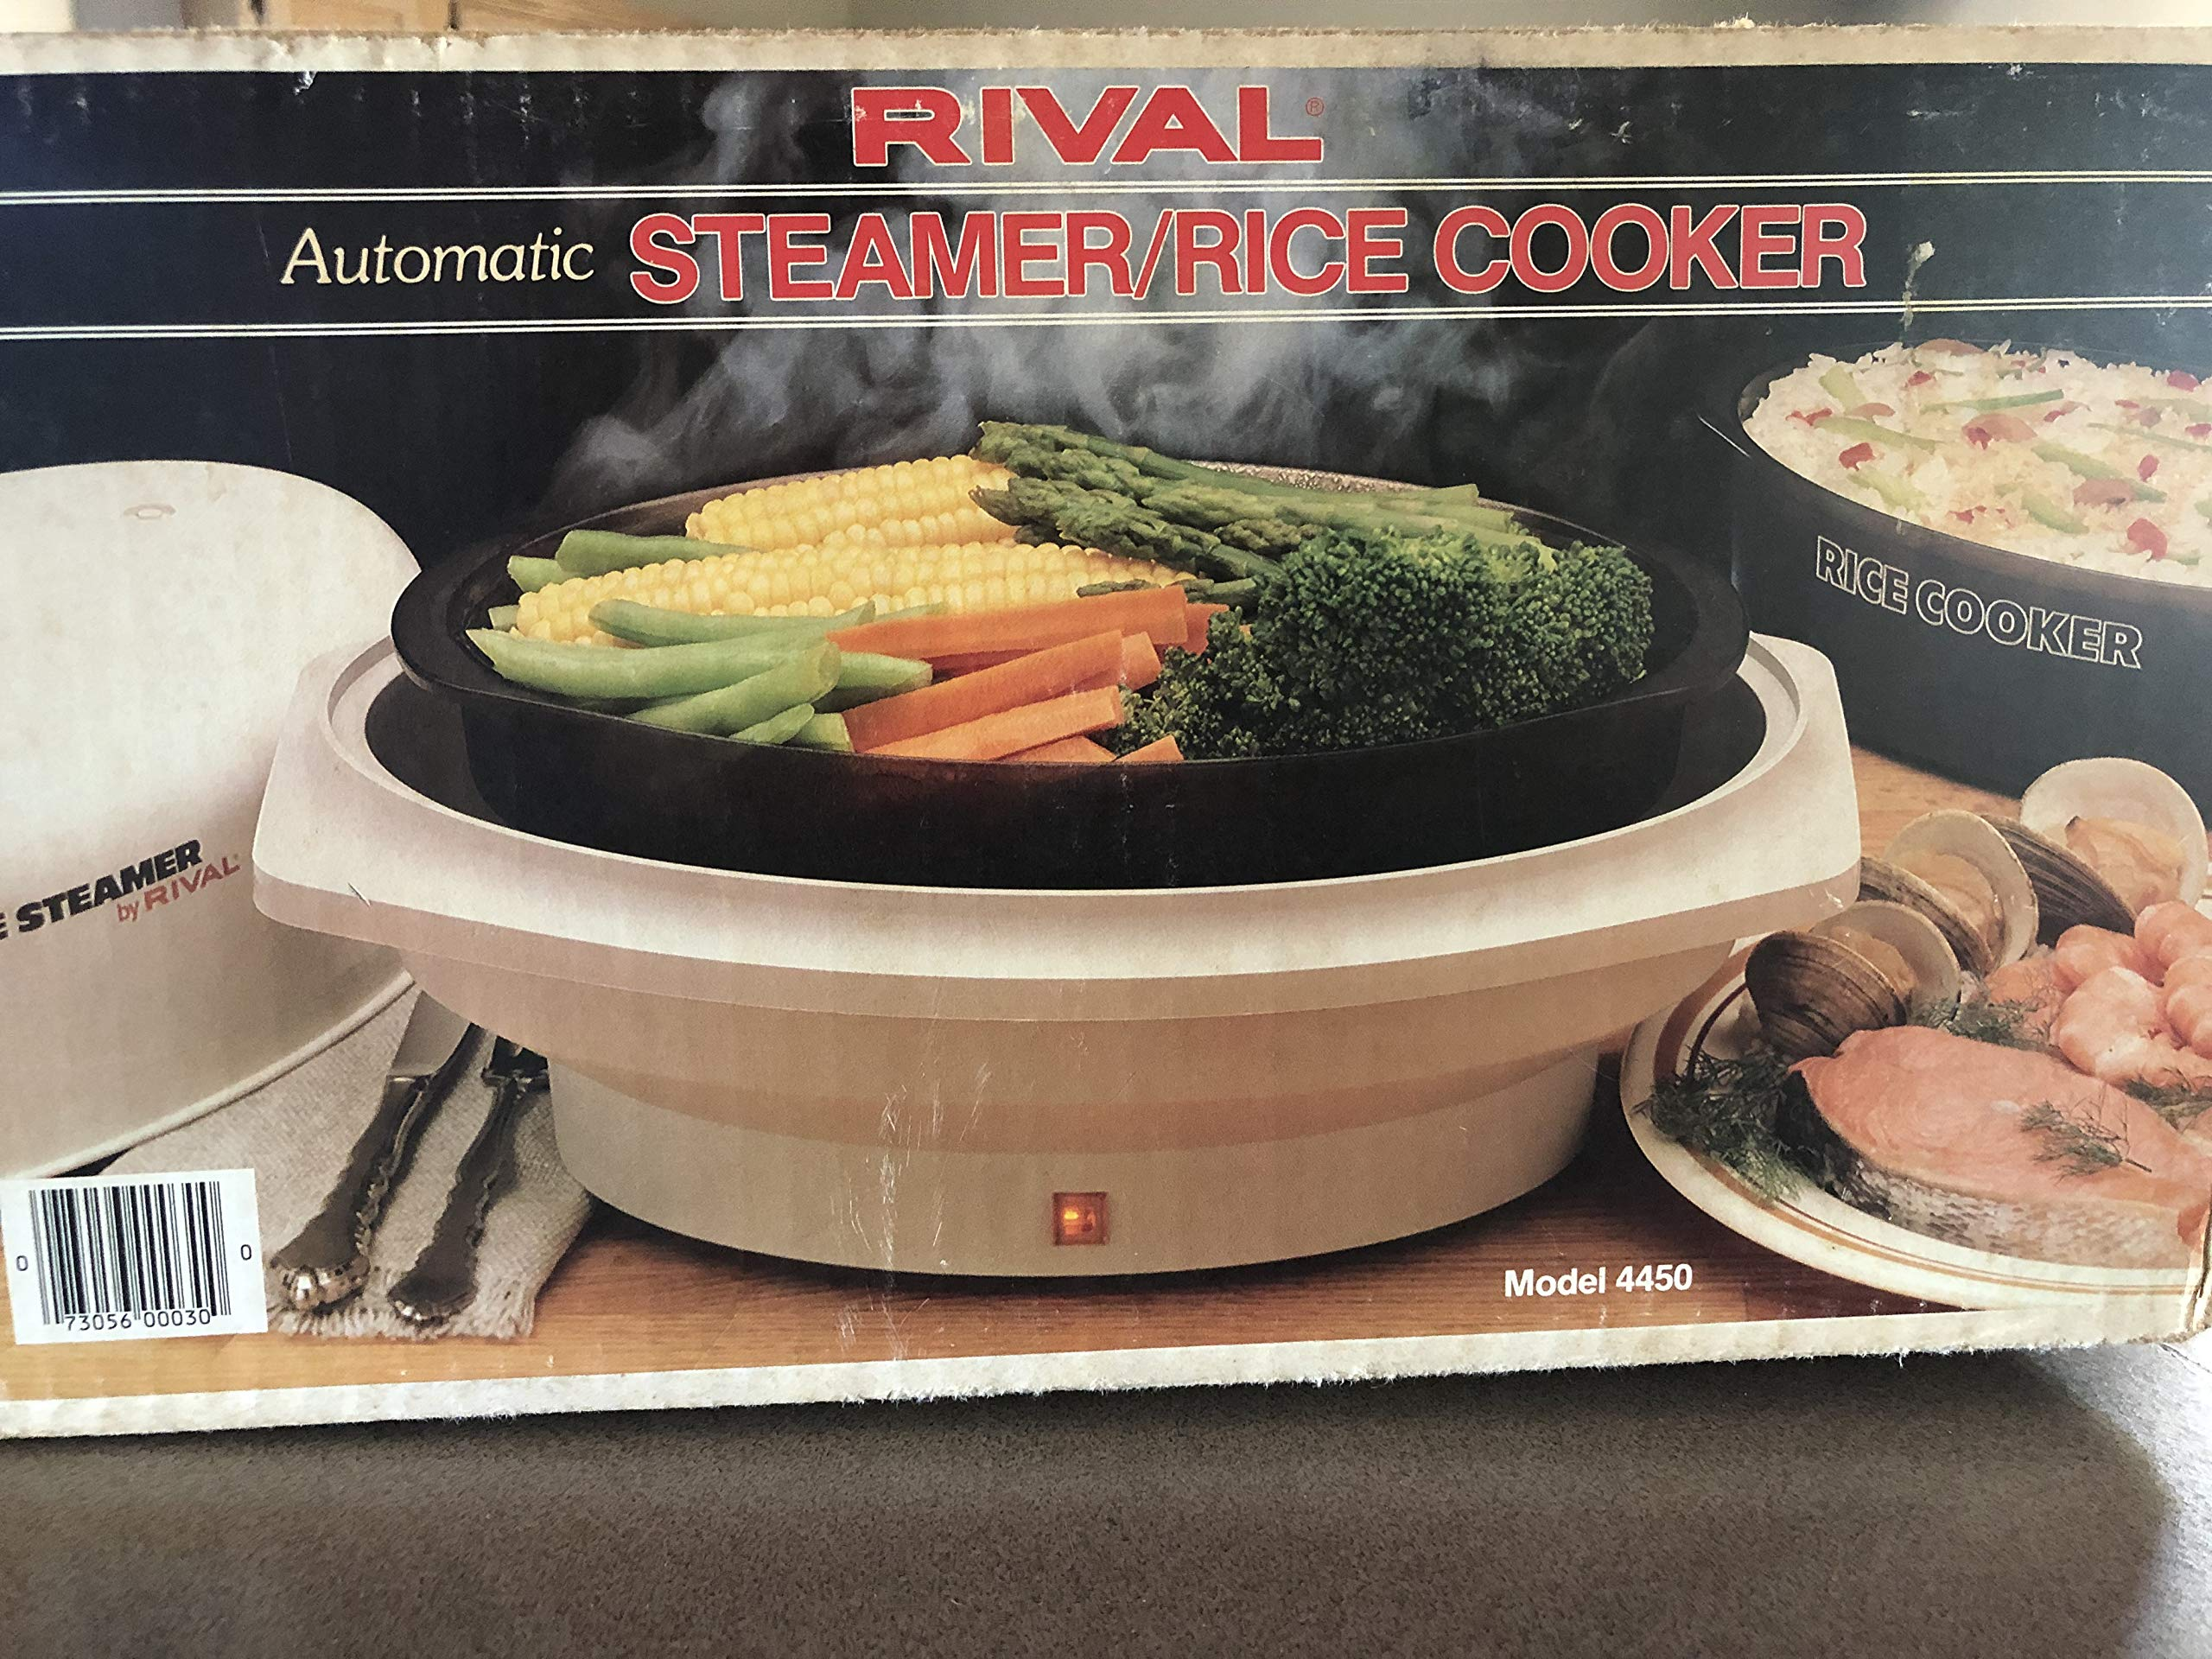 Rival Automatic Steamer/rice Cooker